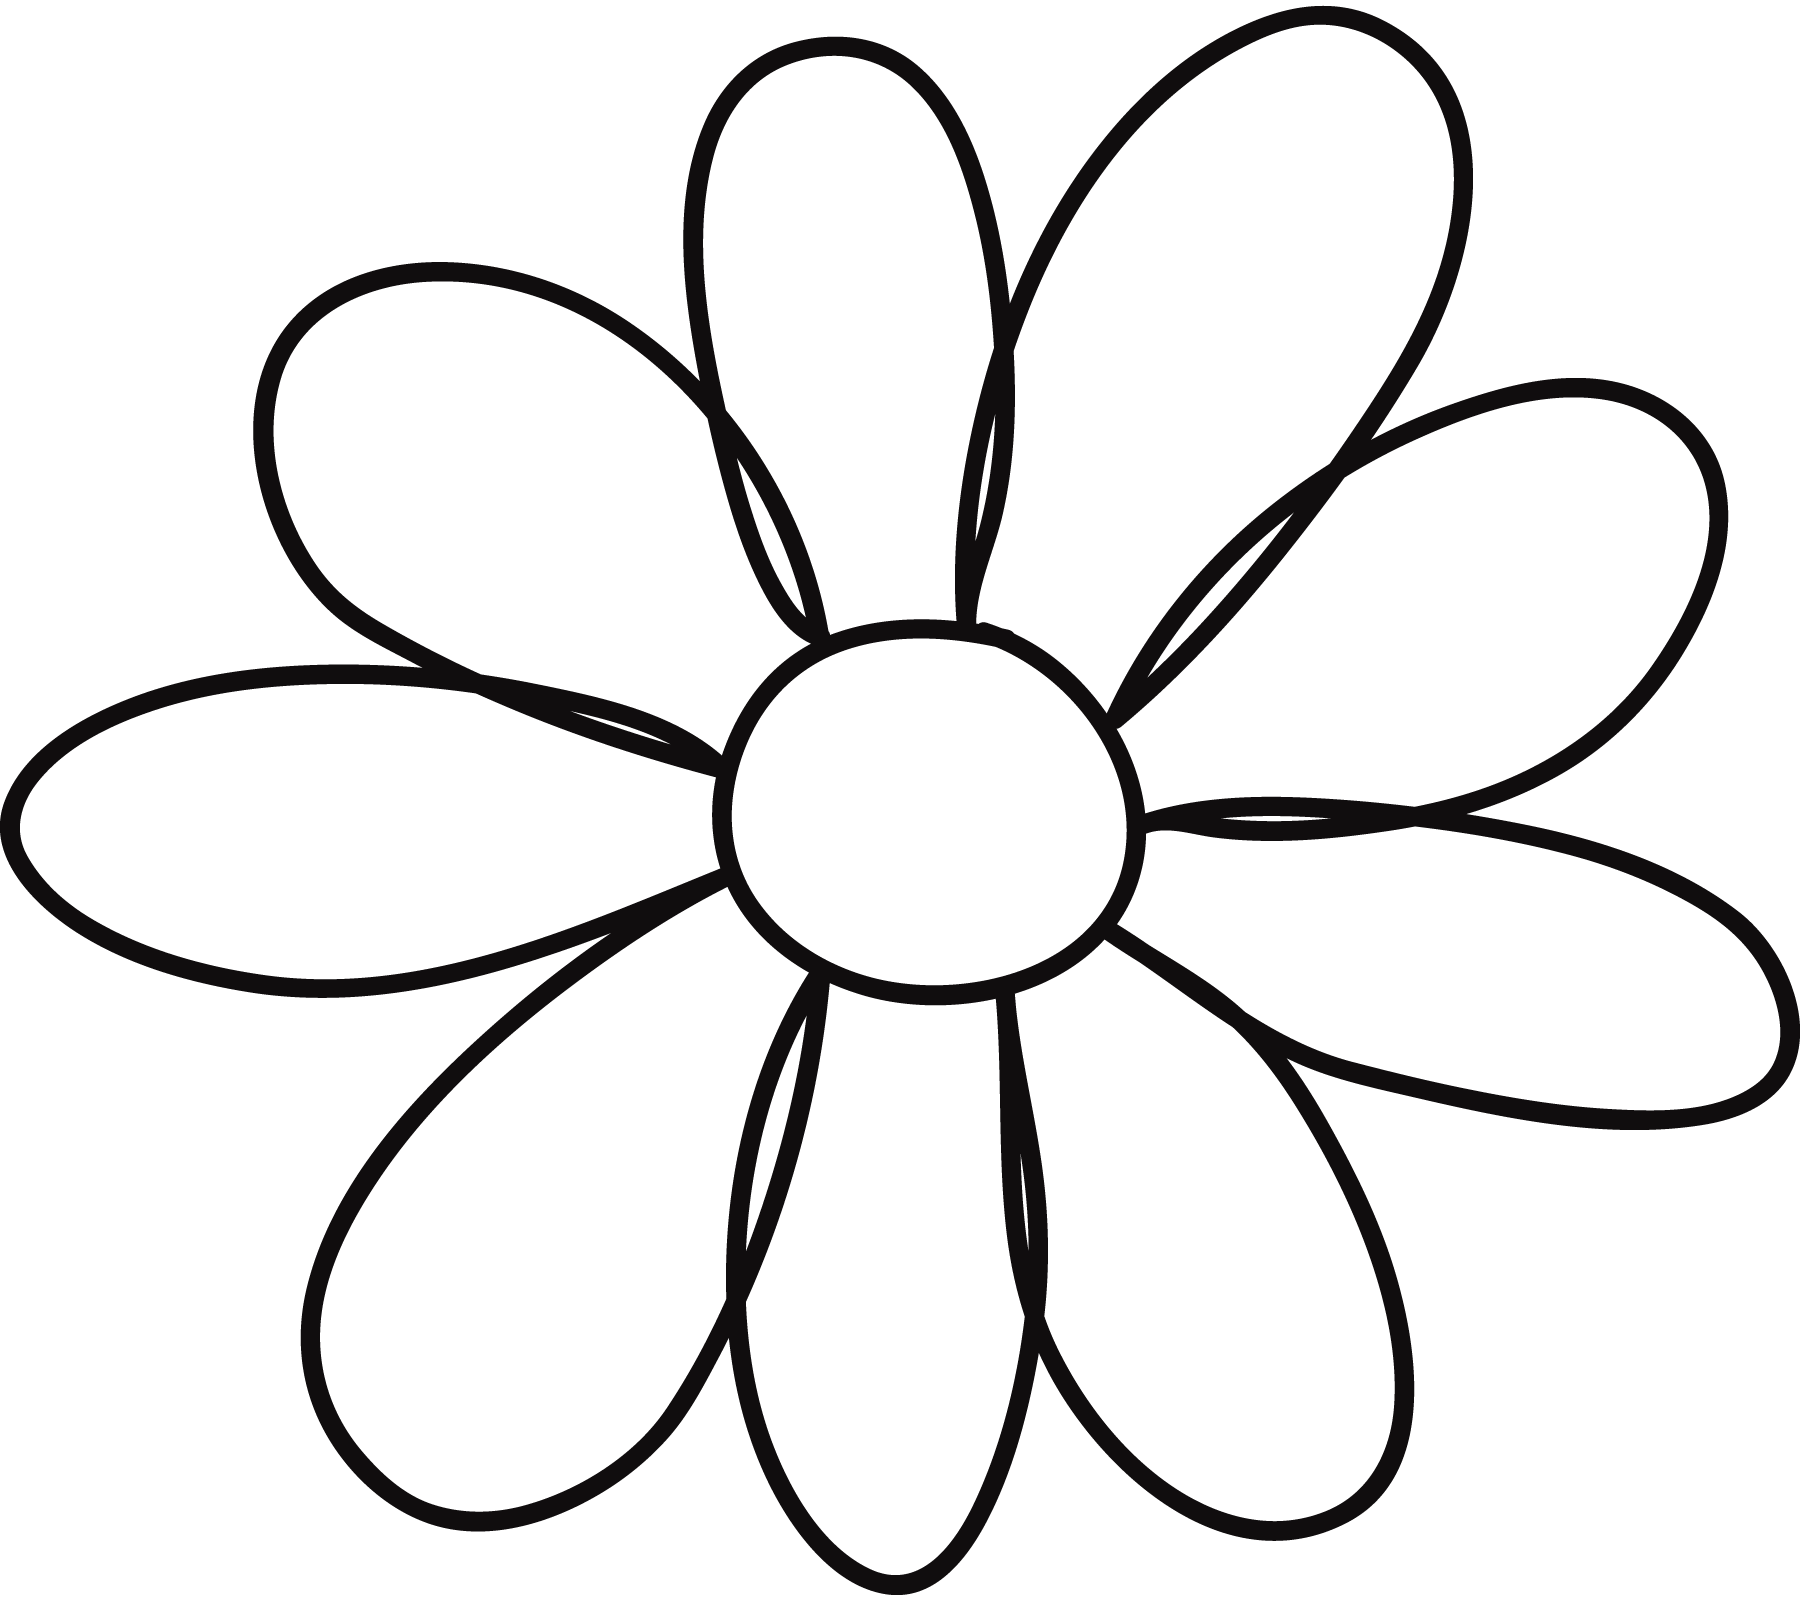 coloring flower clipart black and white coloring flowers in black and white stock vector and clipart white black coloring flower